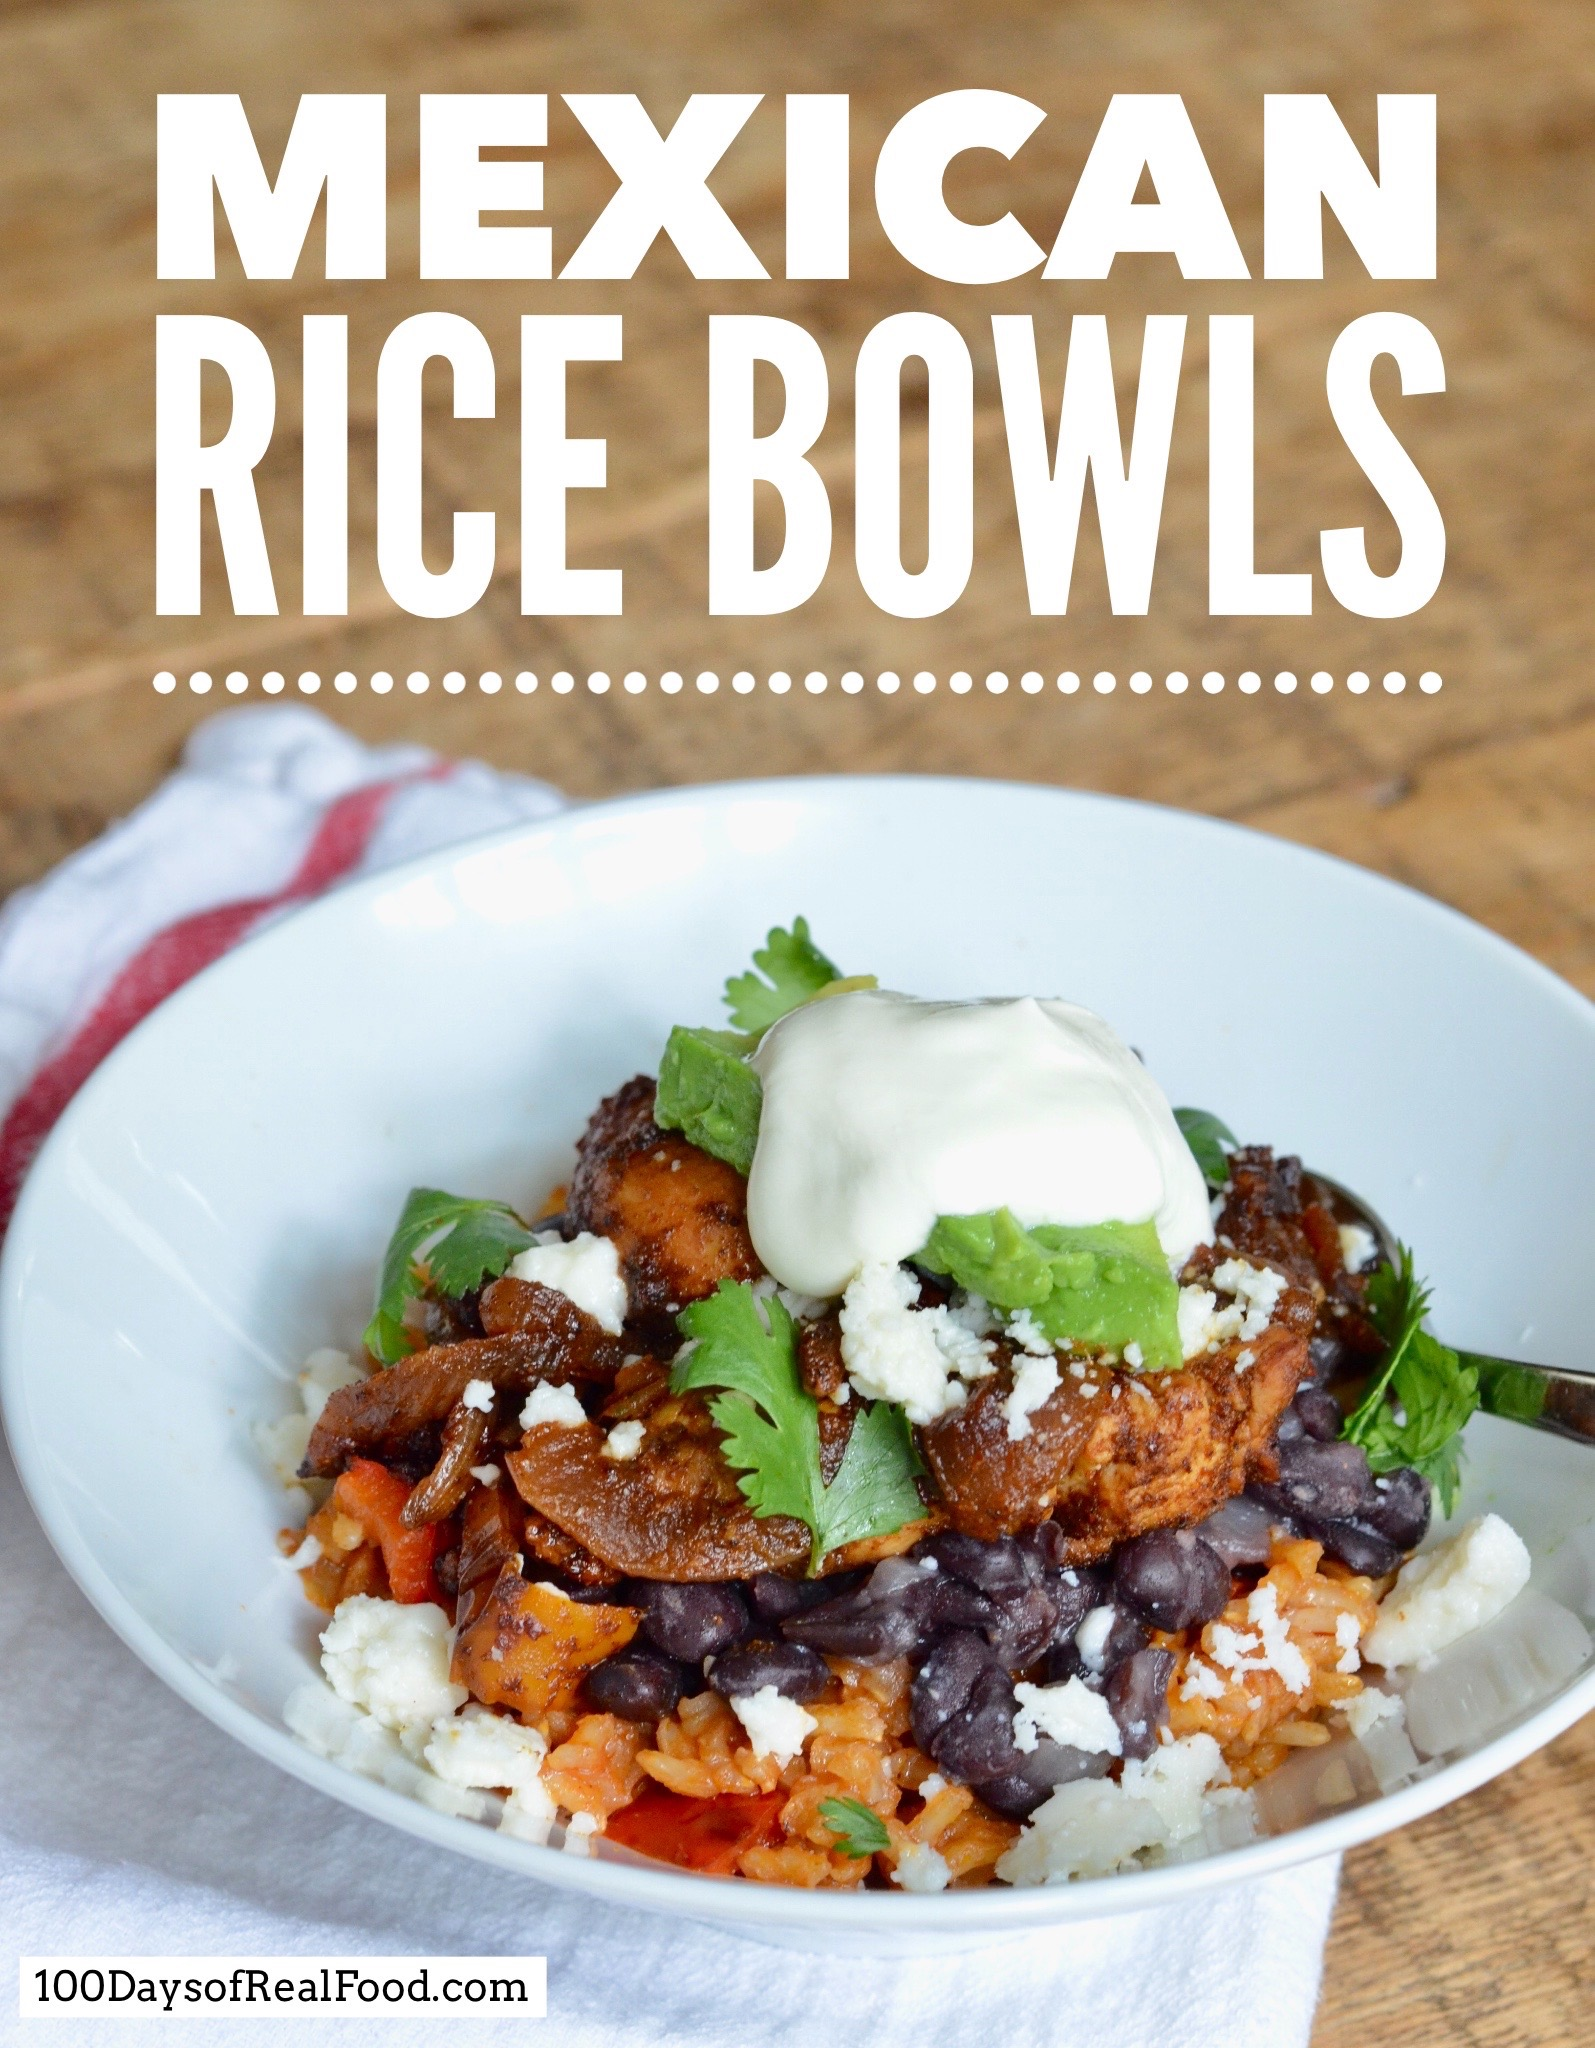 Mexican Rice Bowls on 100 Days of Real Food